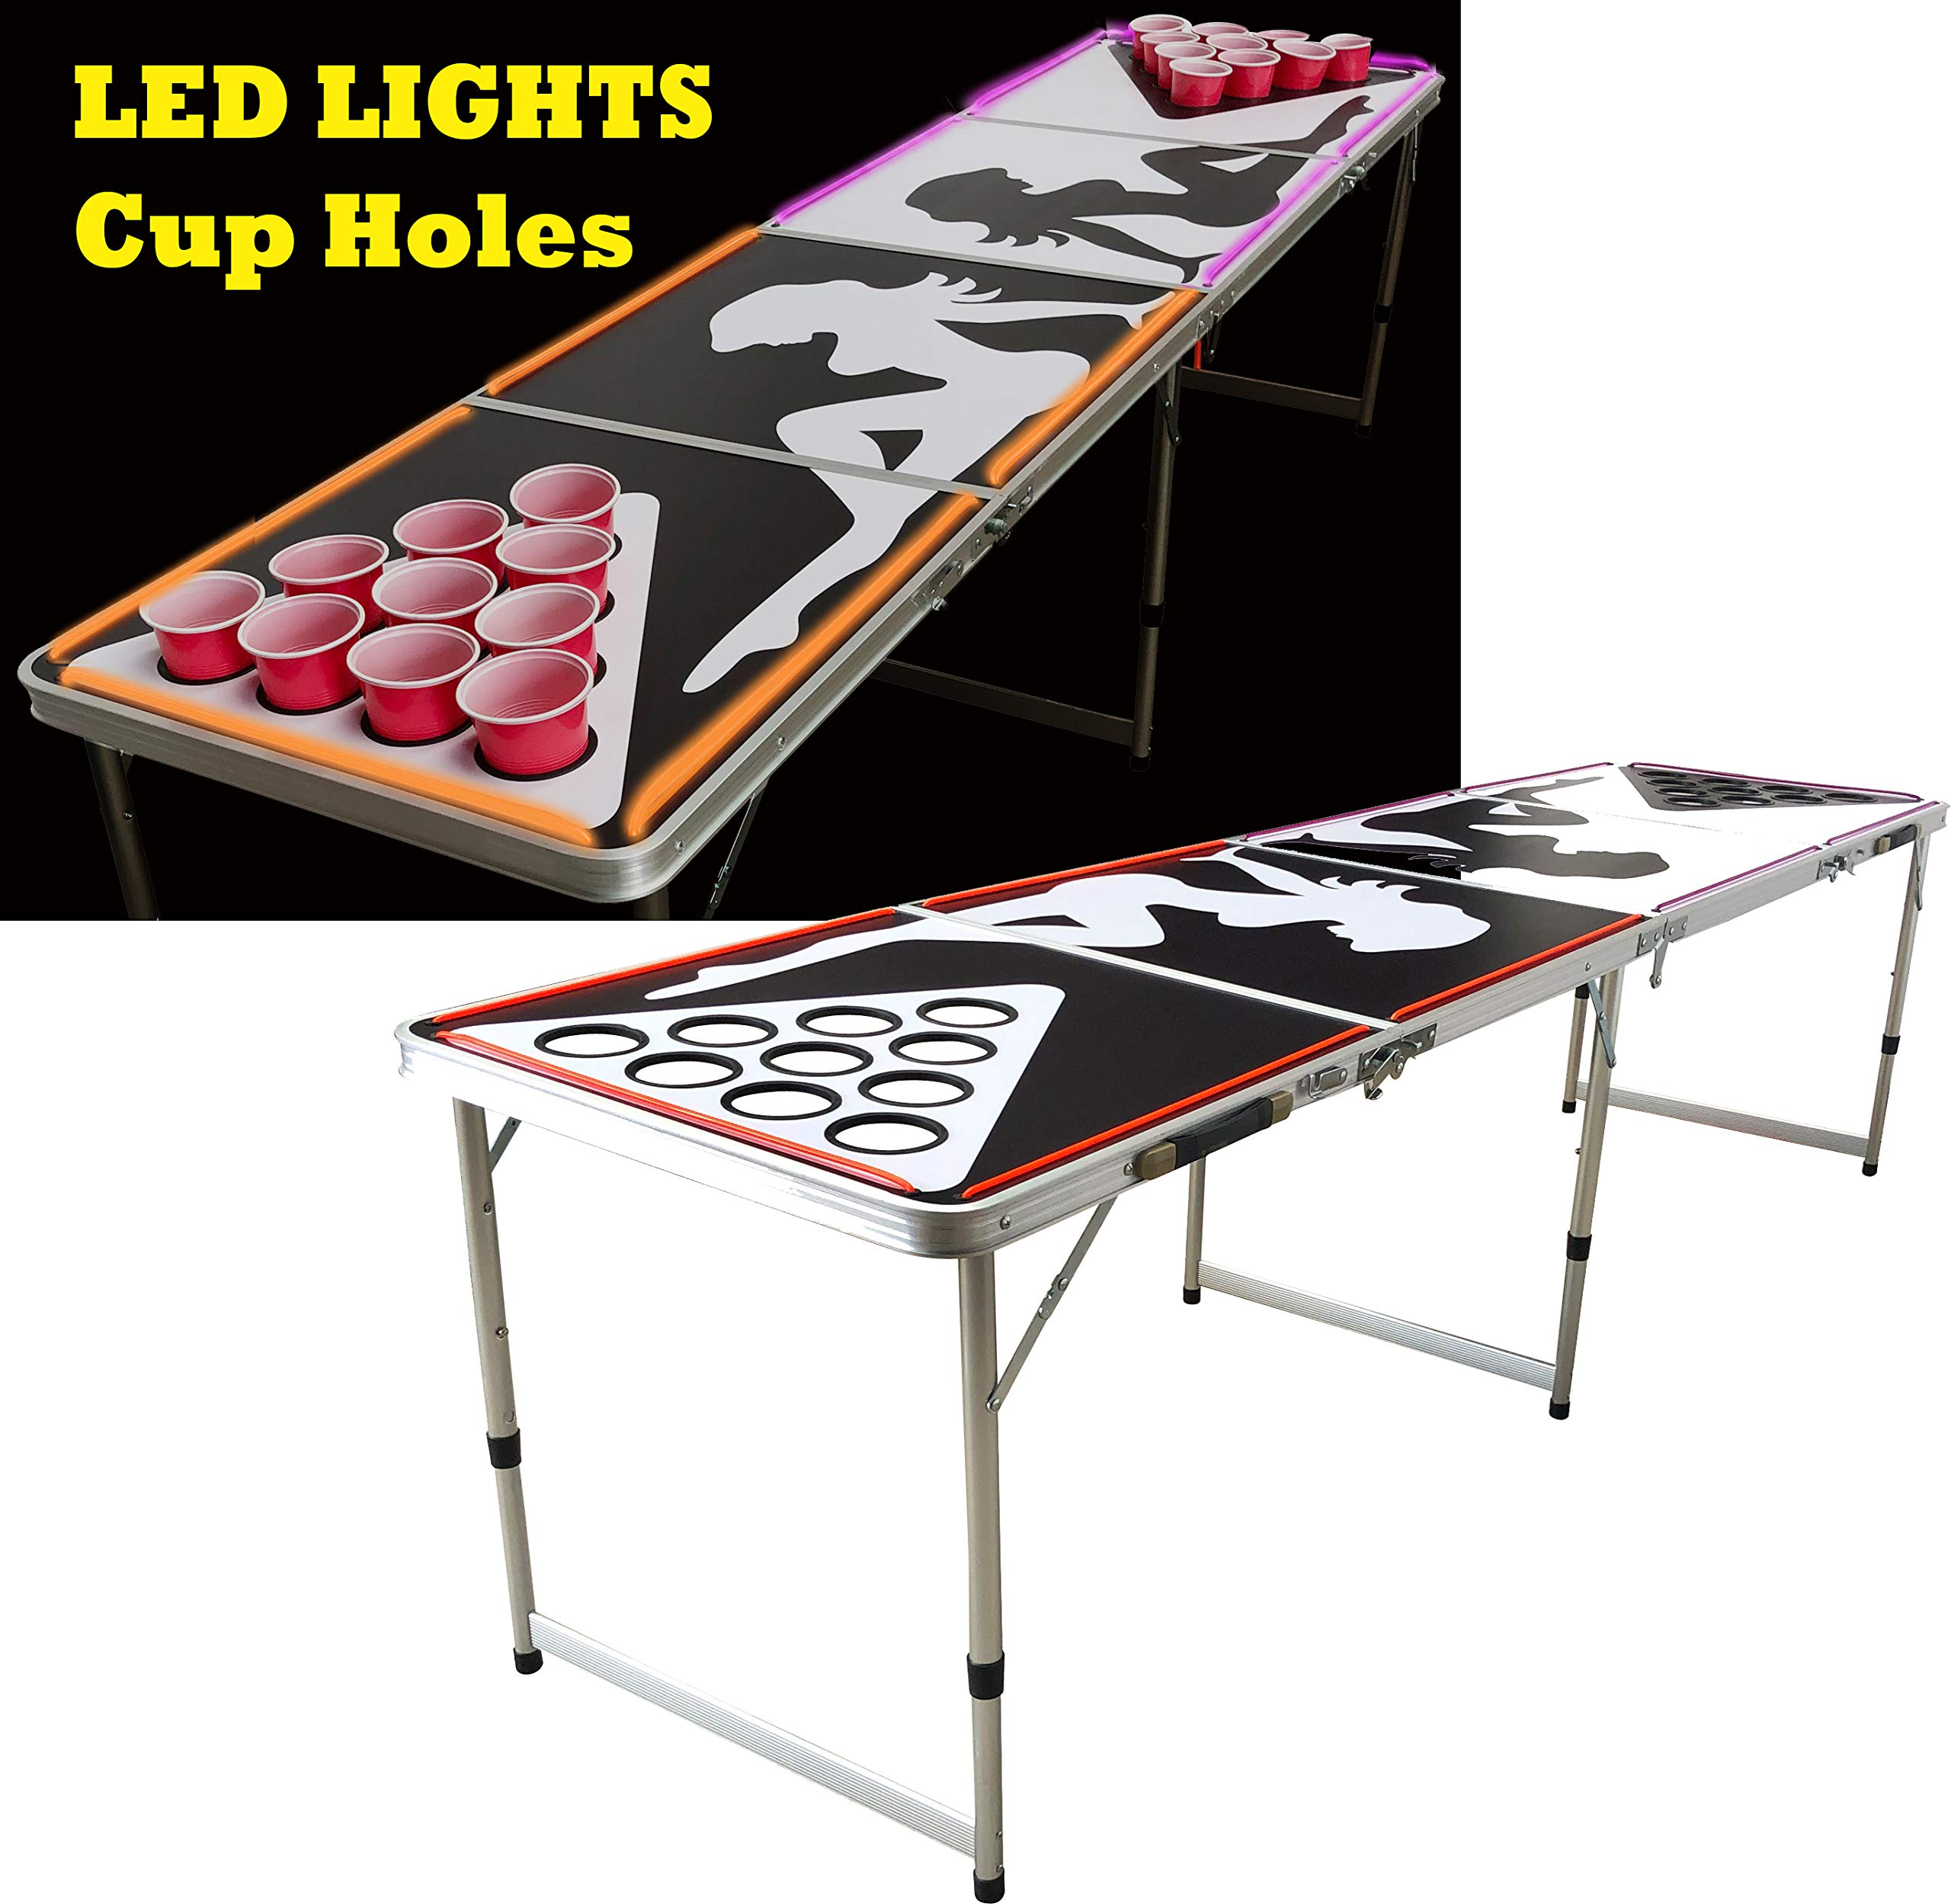 LED Lights Beer Pong Table with Holes for Cups 8' Aluminum Portable Adjustable Folding Indoor Outdoor Tailgate Drinking Party Game Squad Show Girl 01 by PONGBUDDY